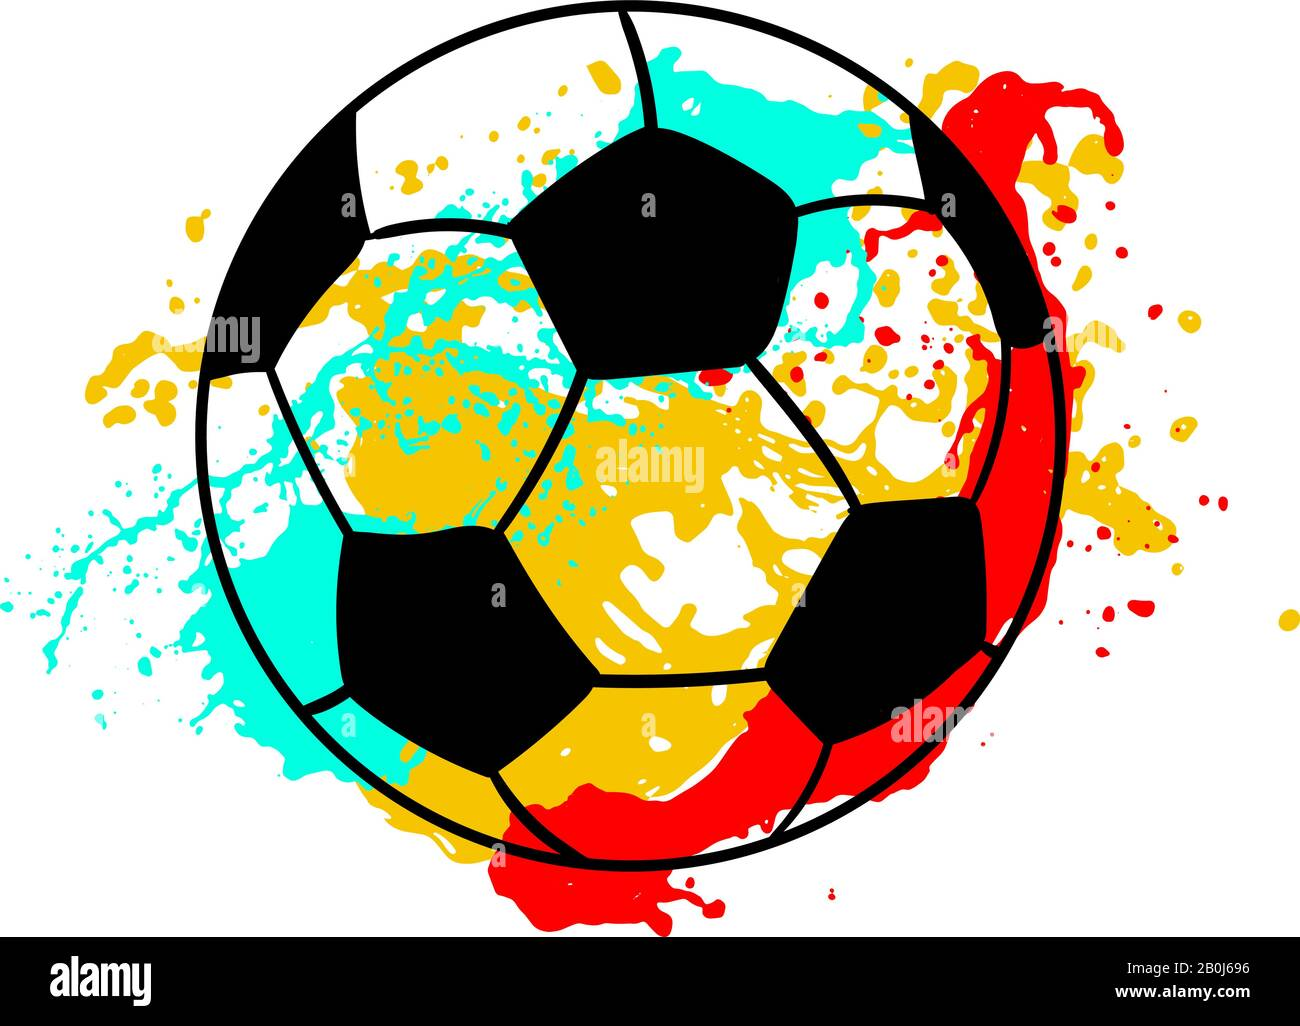 Page 3 Stadium Rainbow High Resolution Stock Photography And Images Alamy